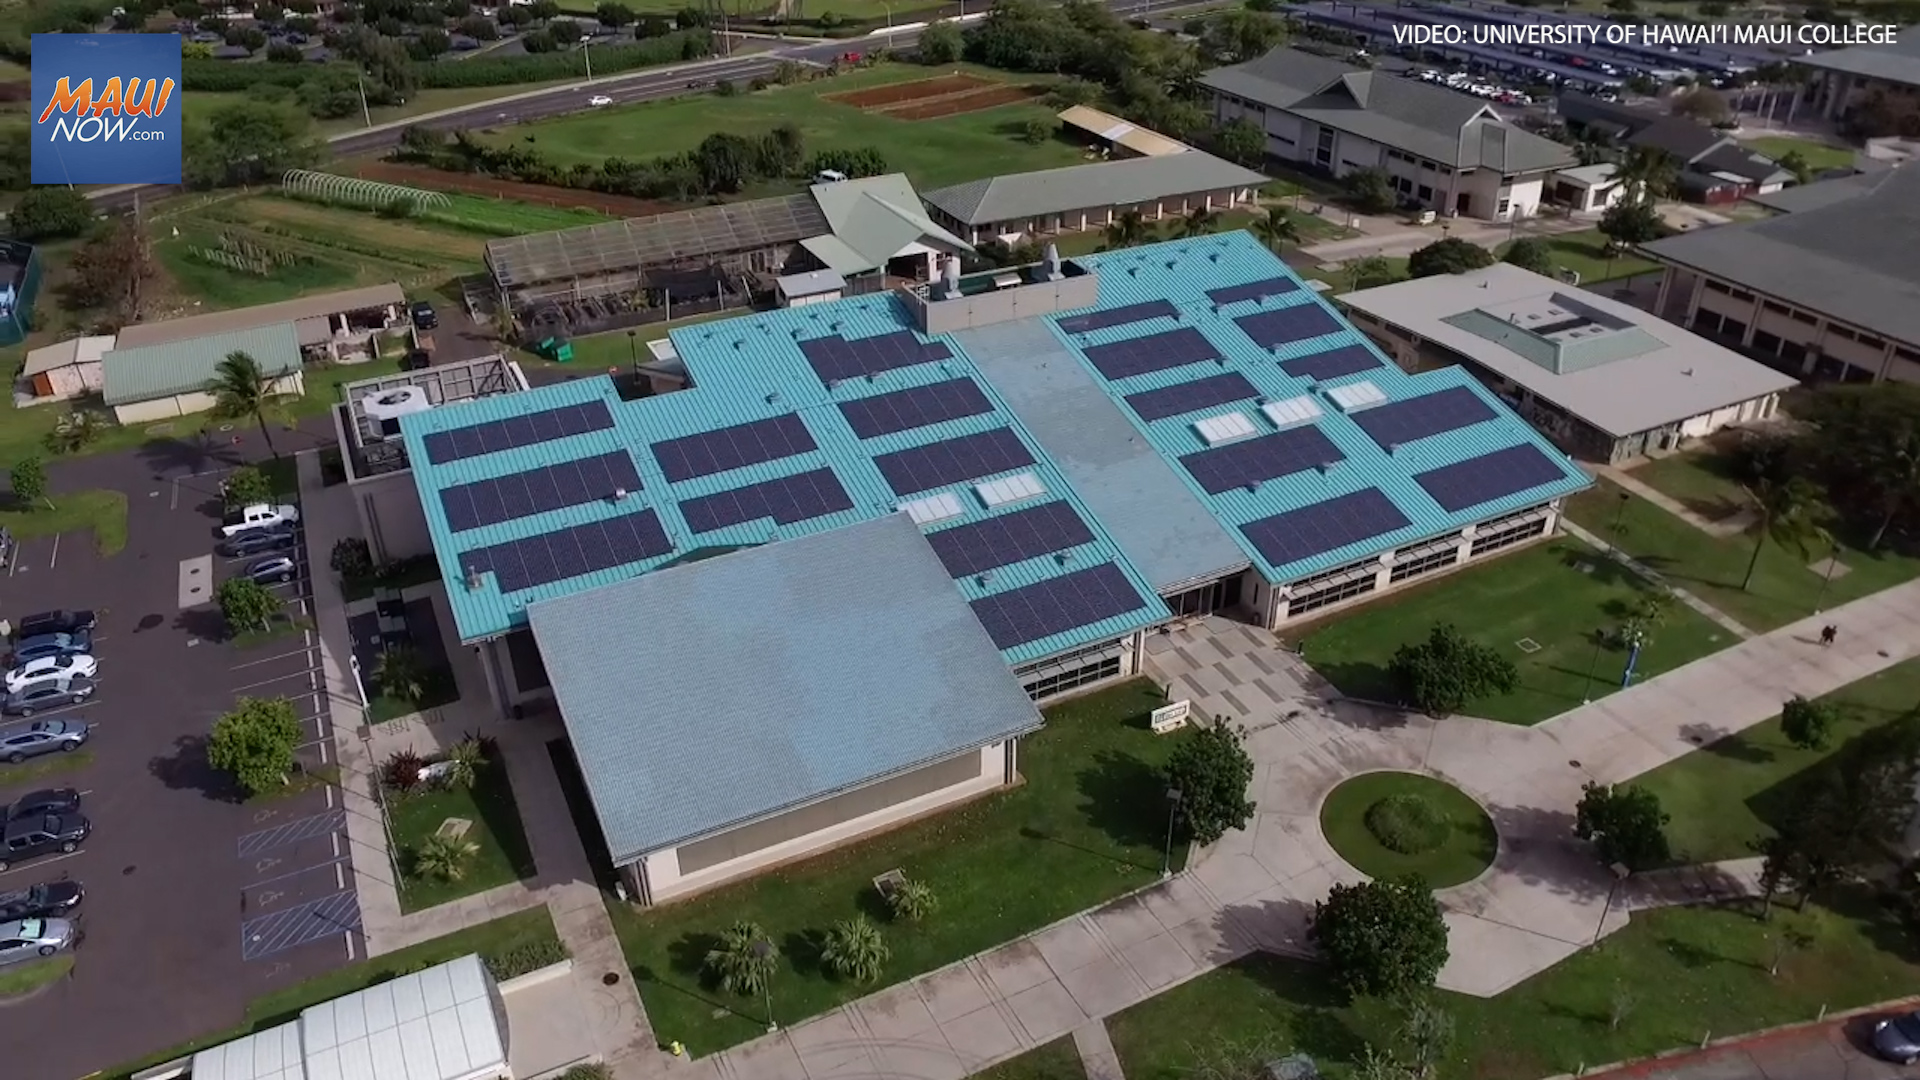 University of Hawai'i Maui College Achieves Net-Zero Goal